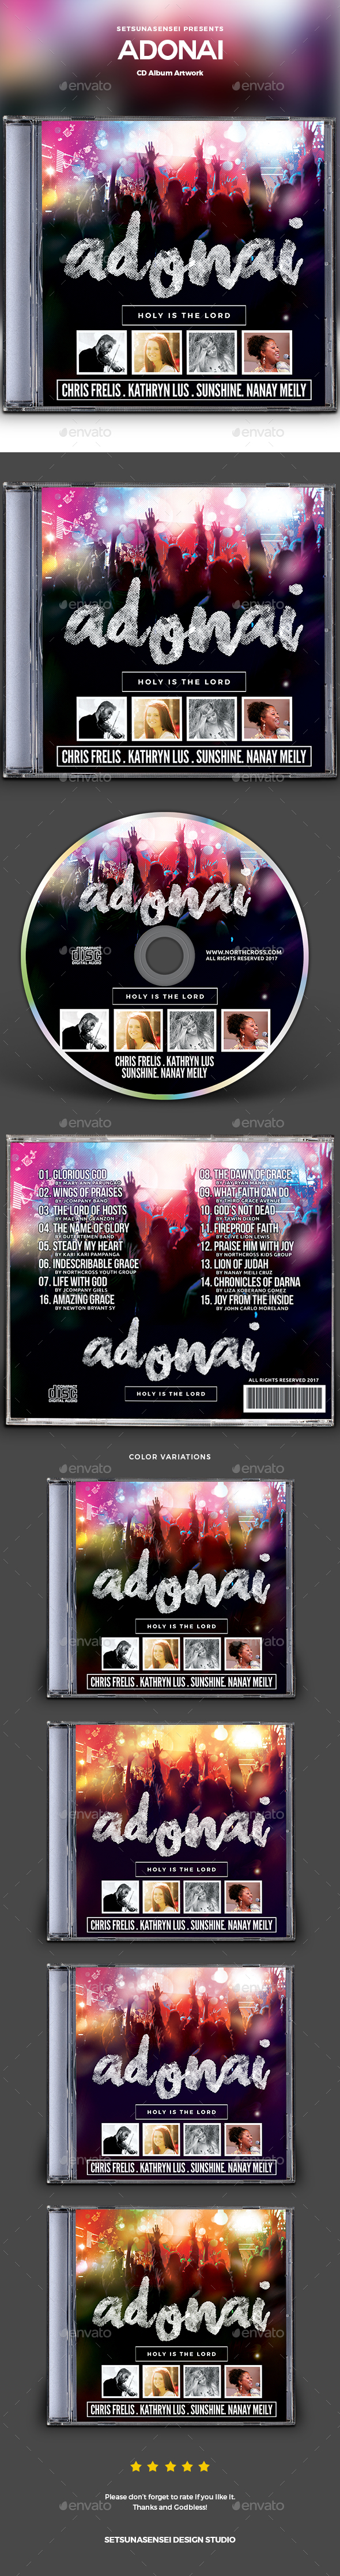 Adonai CD Album Artwork - CD & DVD Artwork Print Templates